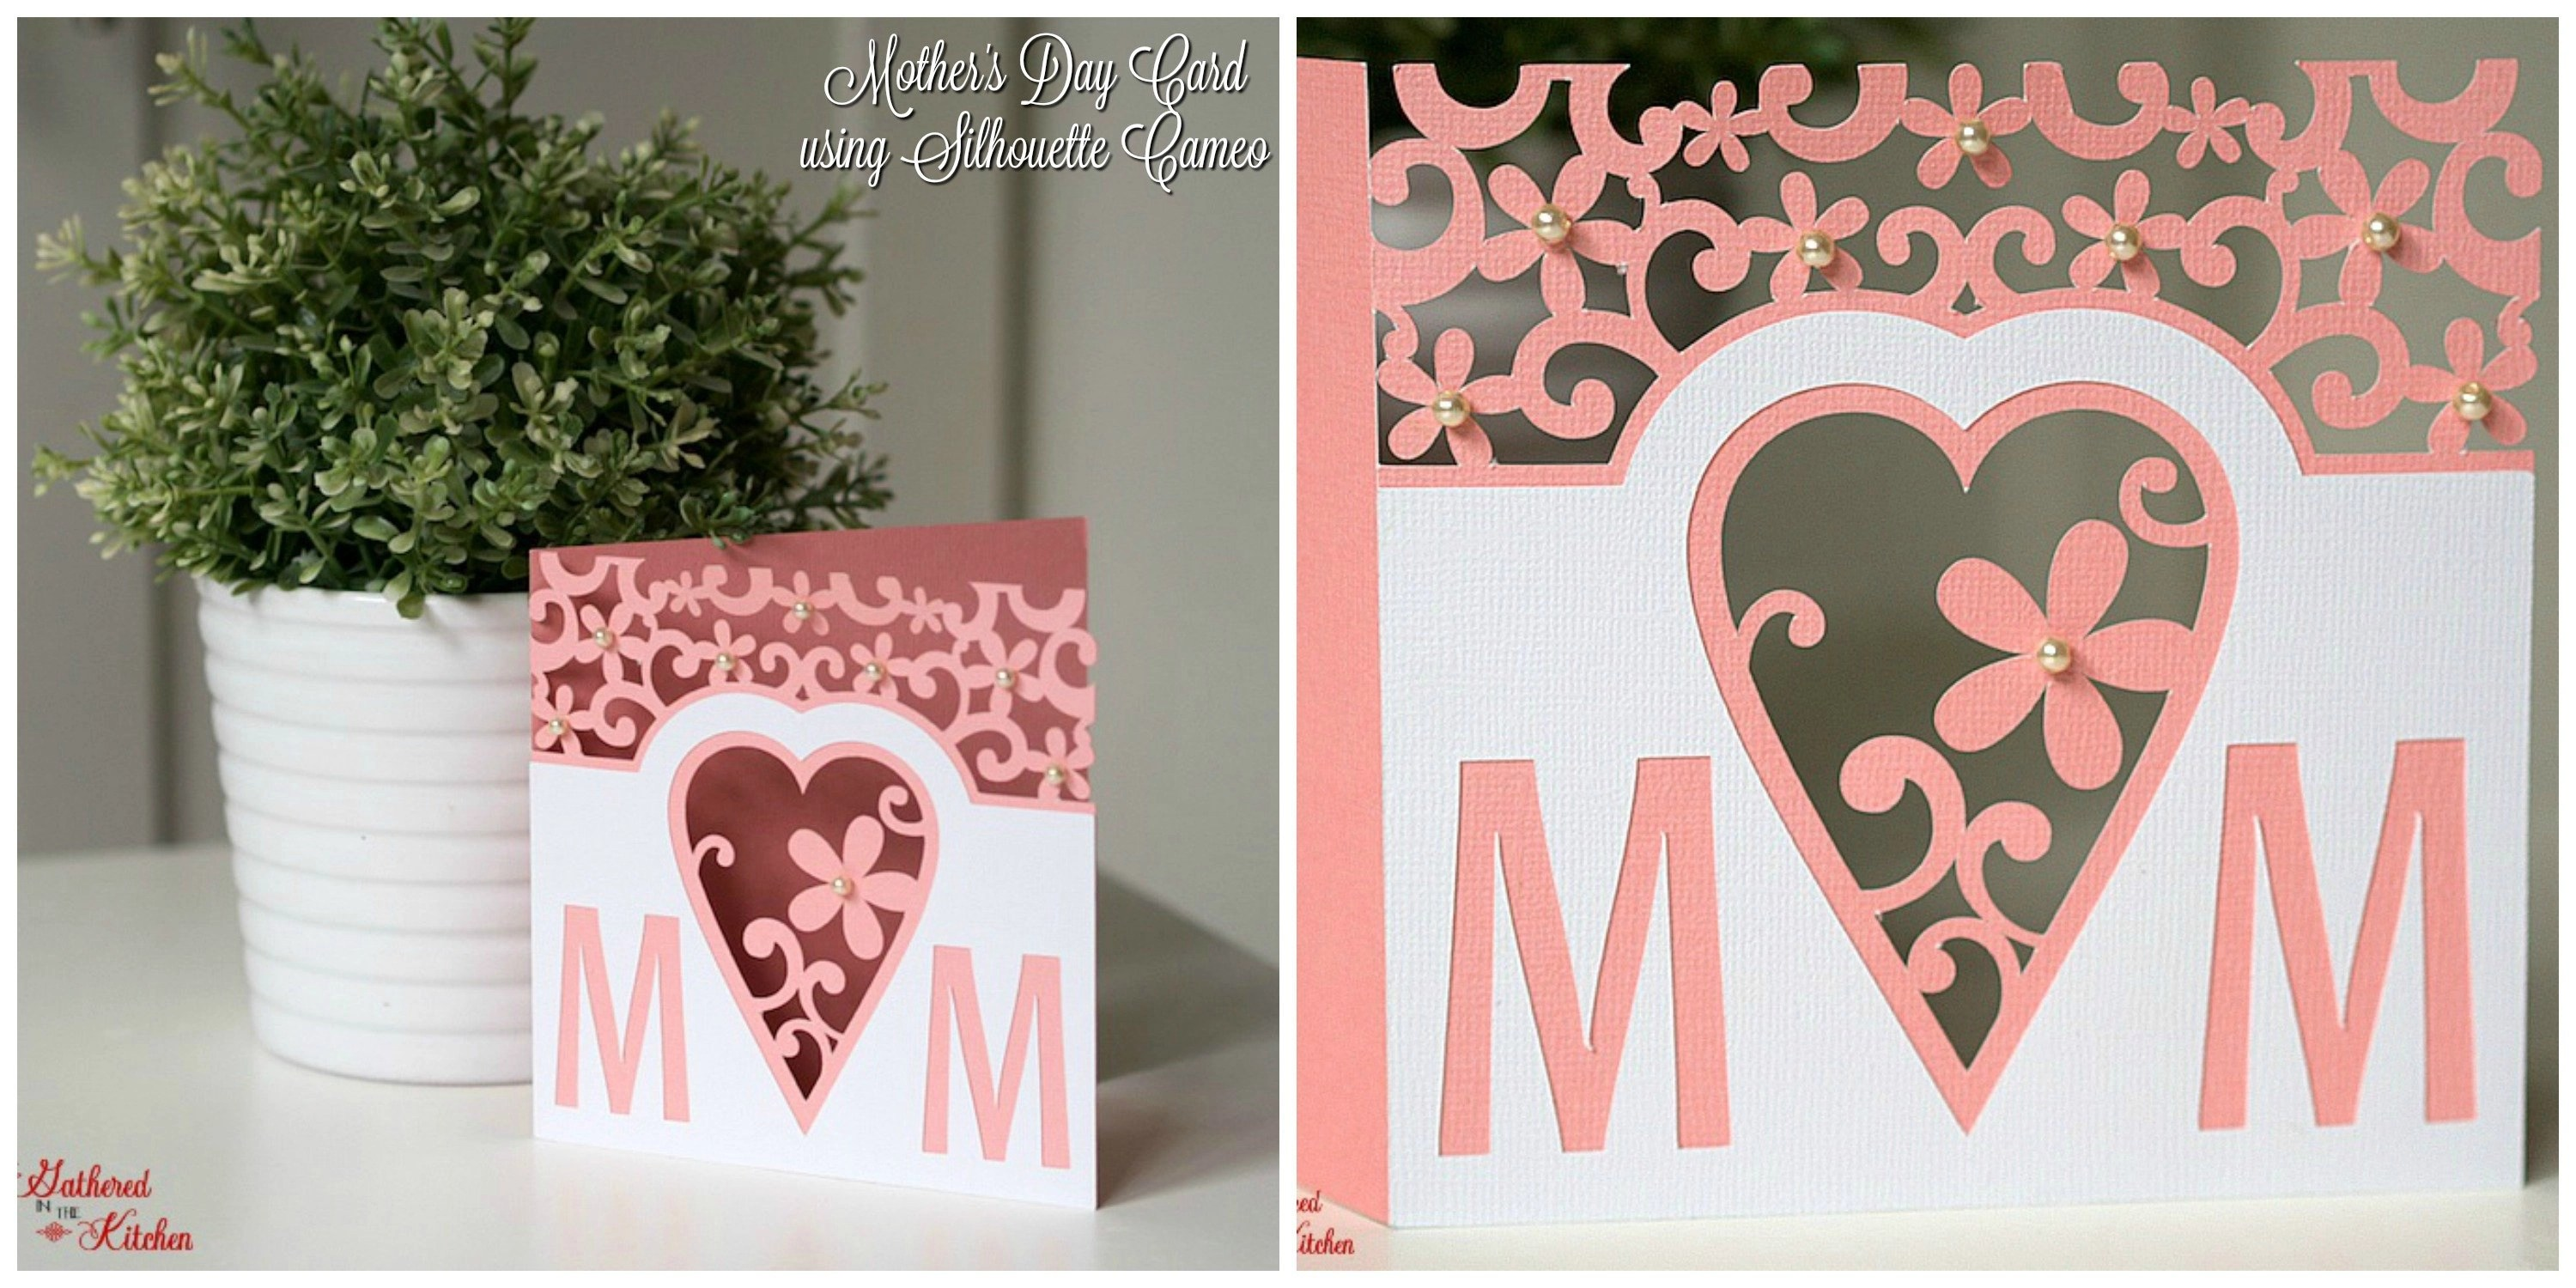 How To Make A Card Using A Silhouette Cameo Gathered In The Kitchen